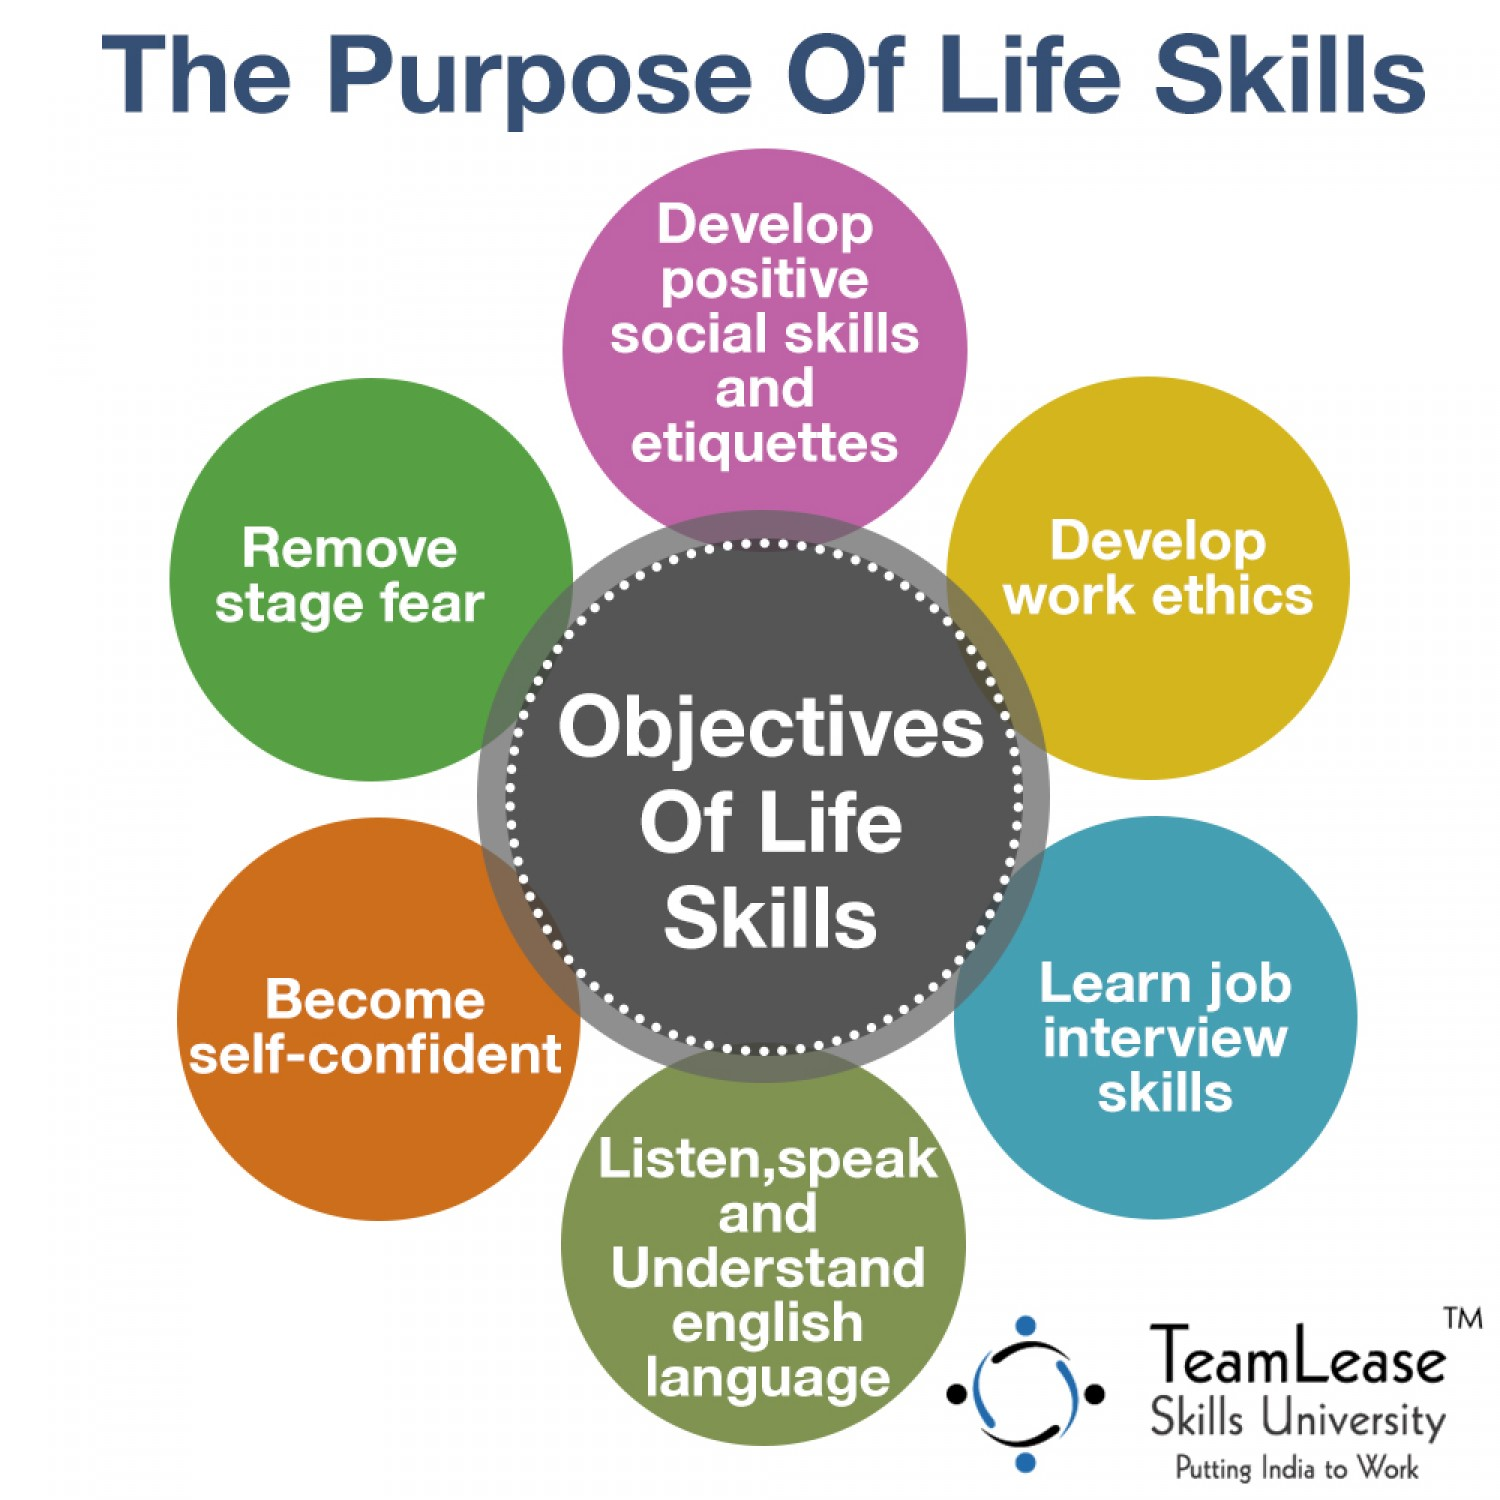 the-main-aim-of-learning-life-skills_5724486b21d8e_w1500